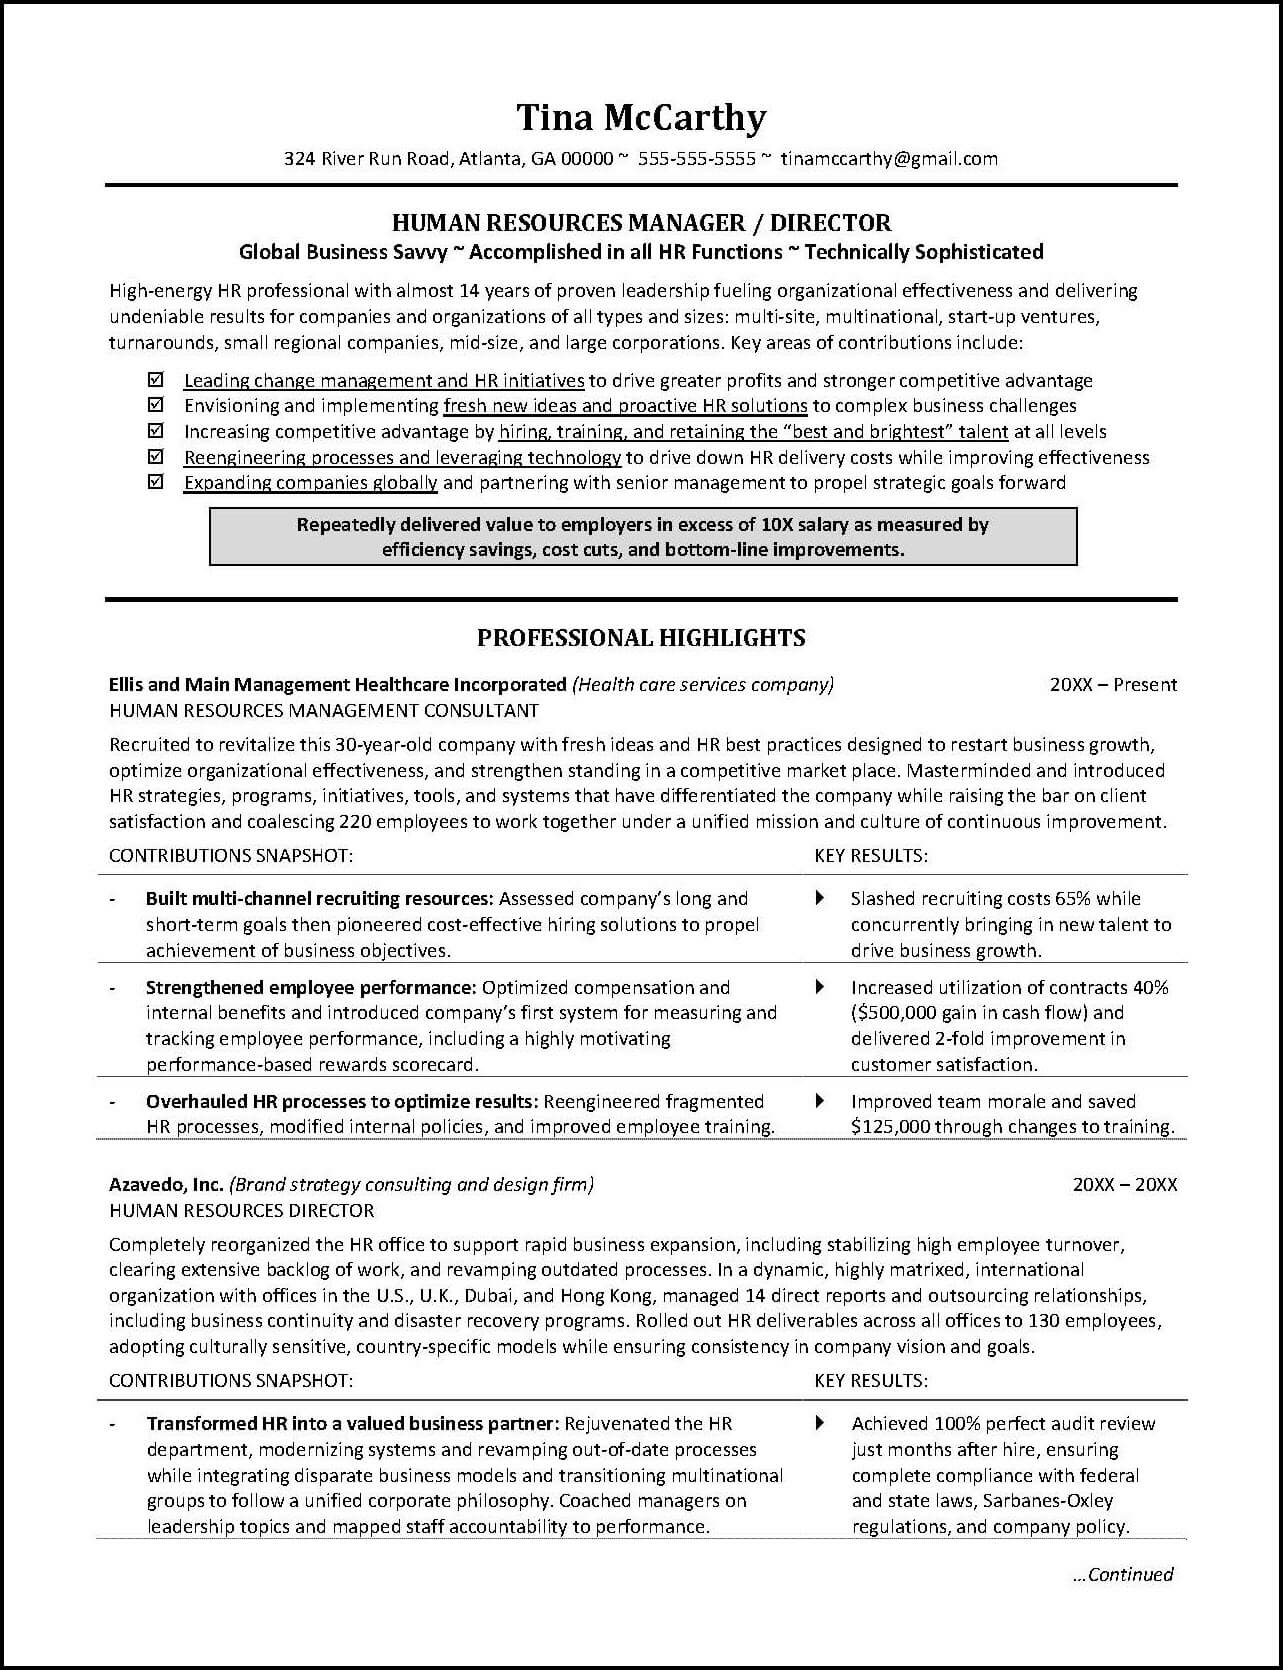 this sample human resources resume is just an example to show the quality and style of our professional resume writing services - Business Management Consultant Sample Resume